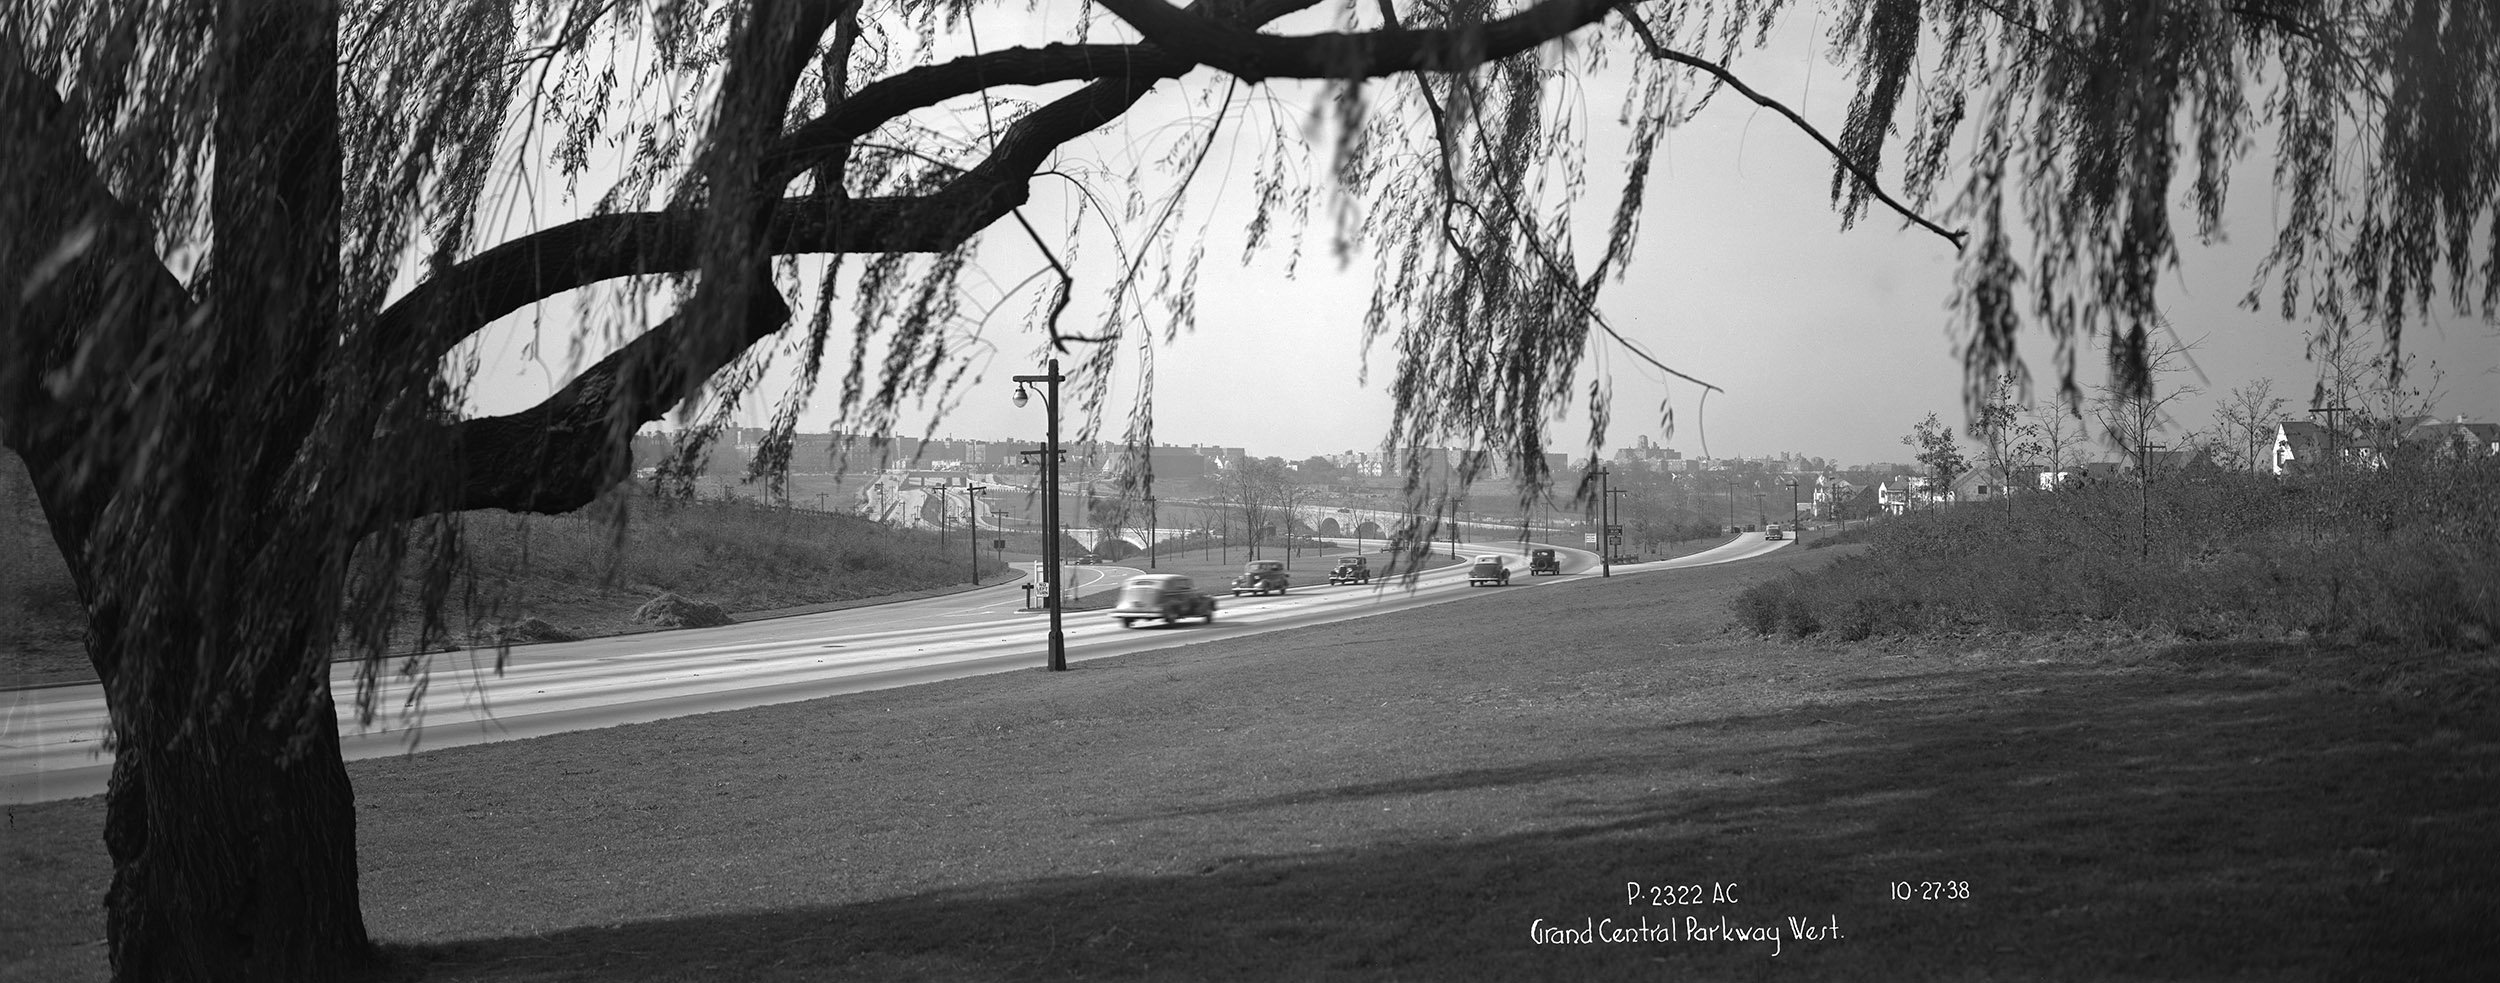 Grand Central Parkway, looking west, Queens, October 27, 1938. Borough President Queens Collection, NYC Municipal Archives.